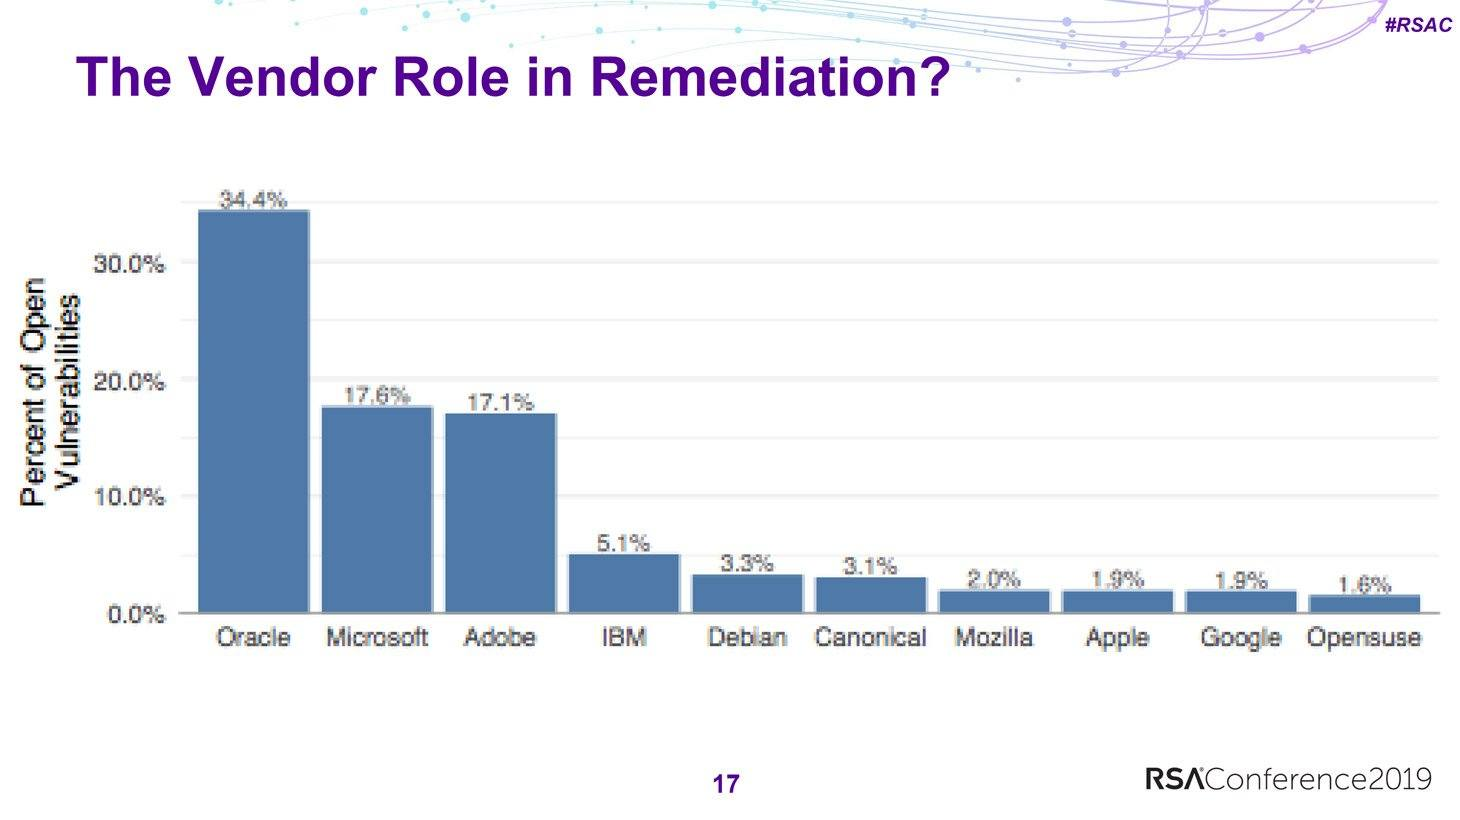 More than two-thirds of unpatched holes are in Oracle, Microsoft, and Adobe products